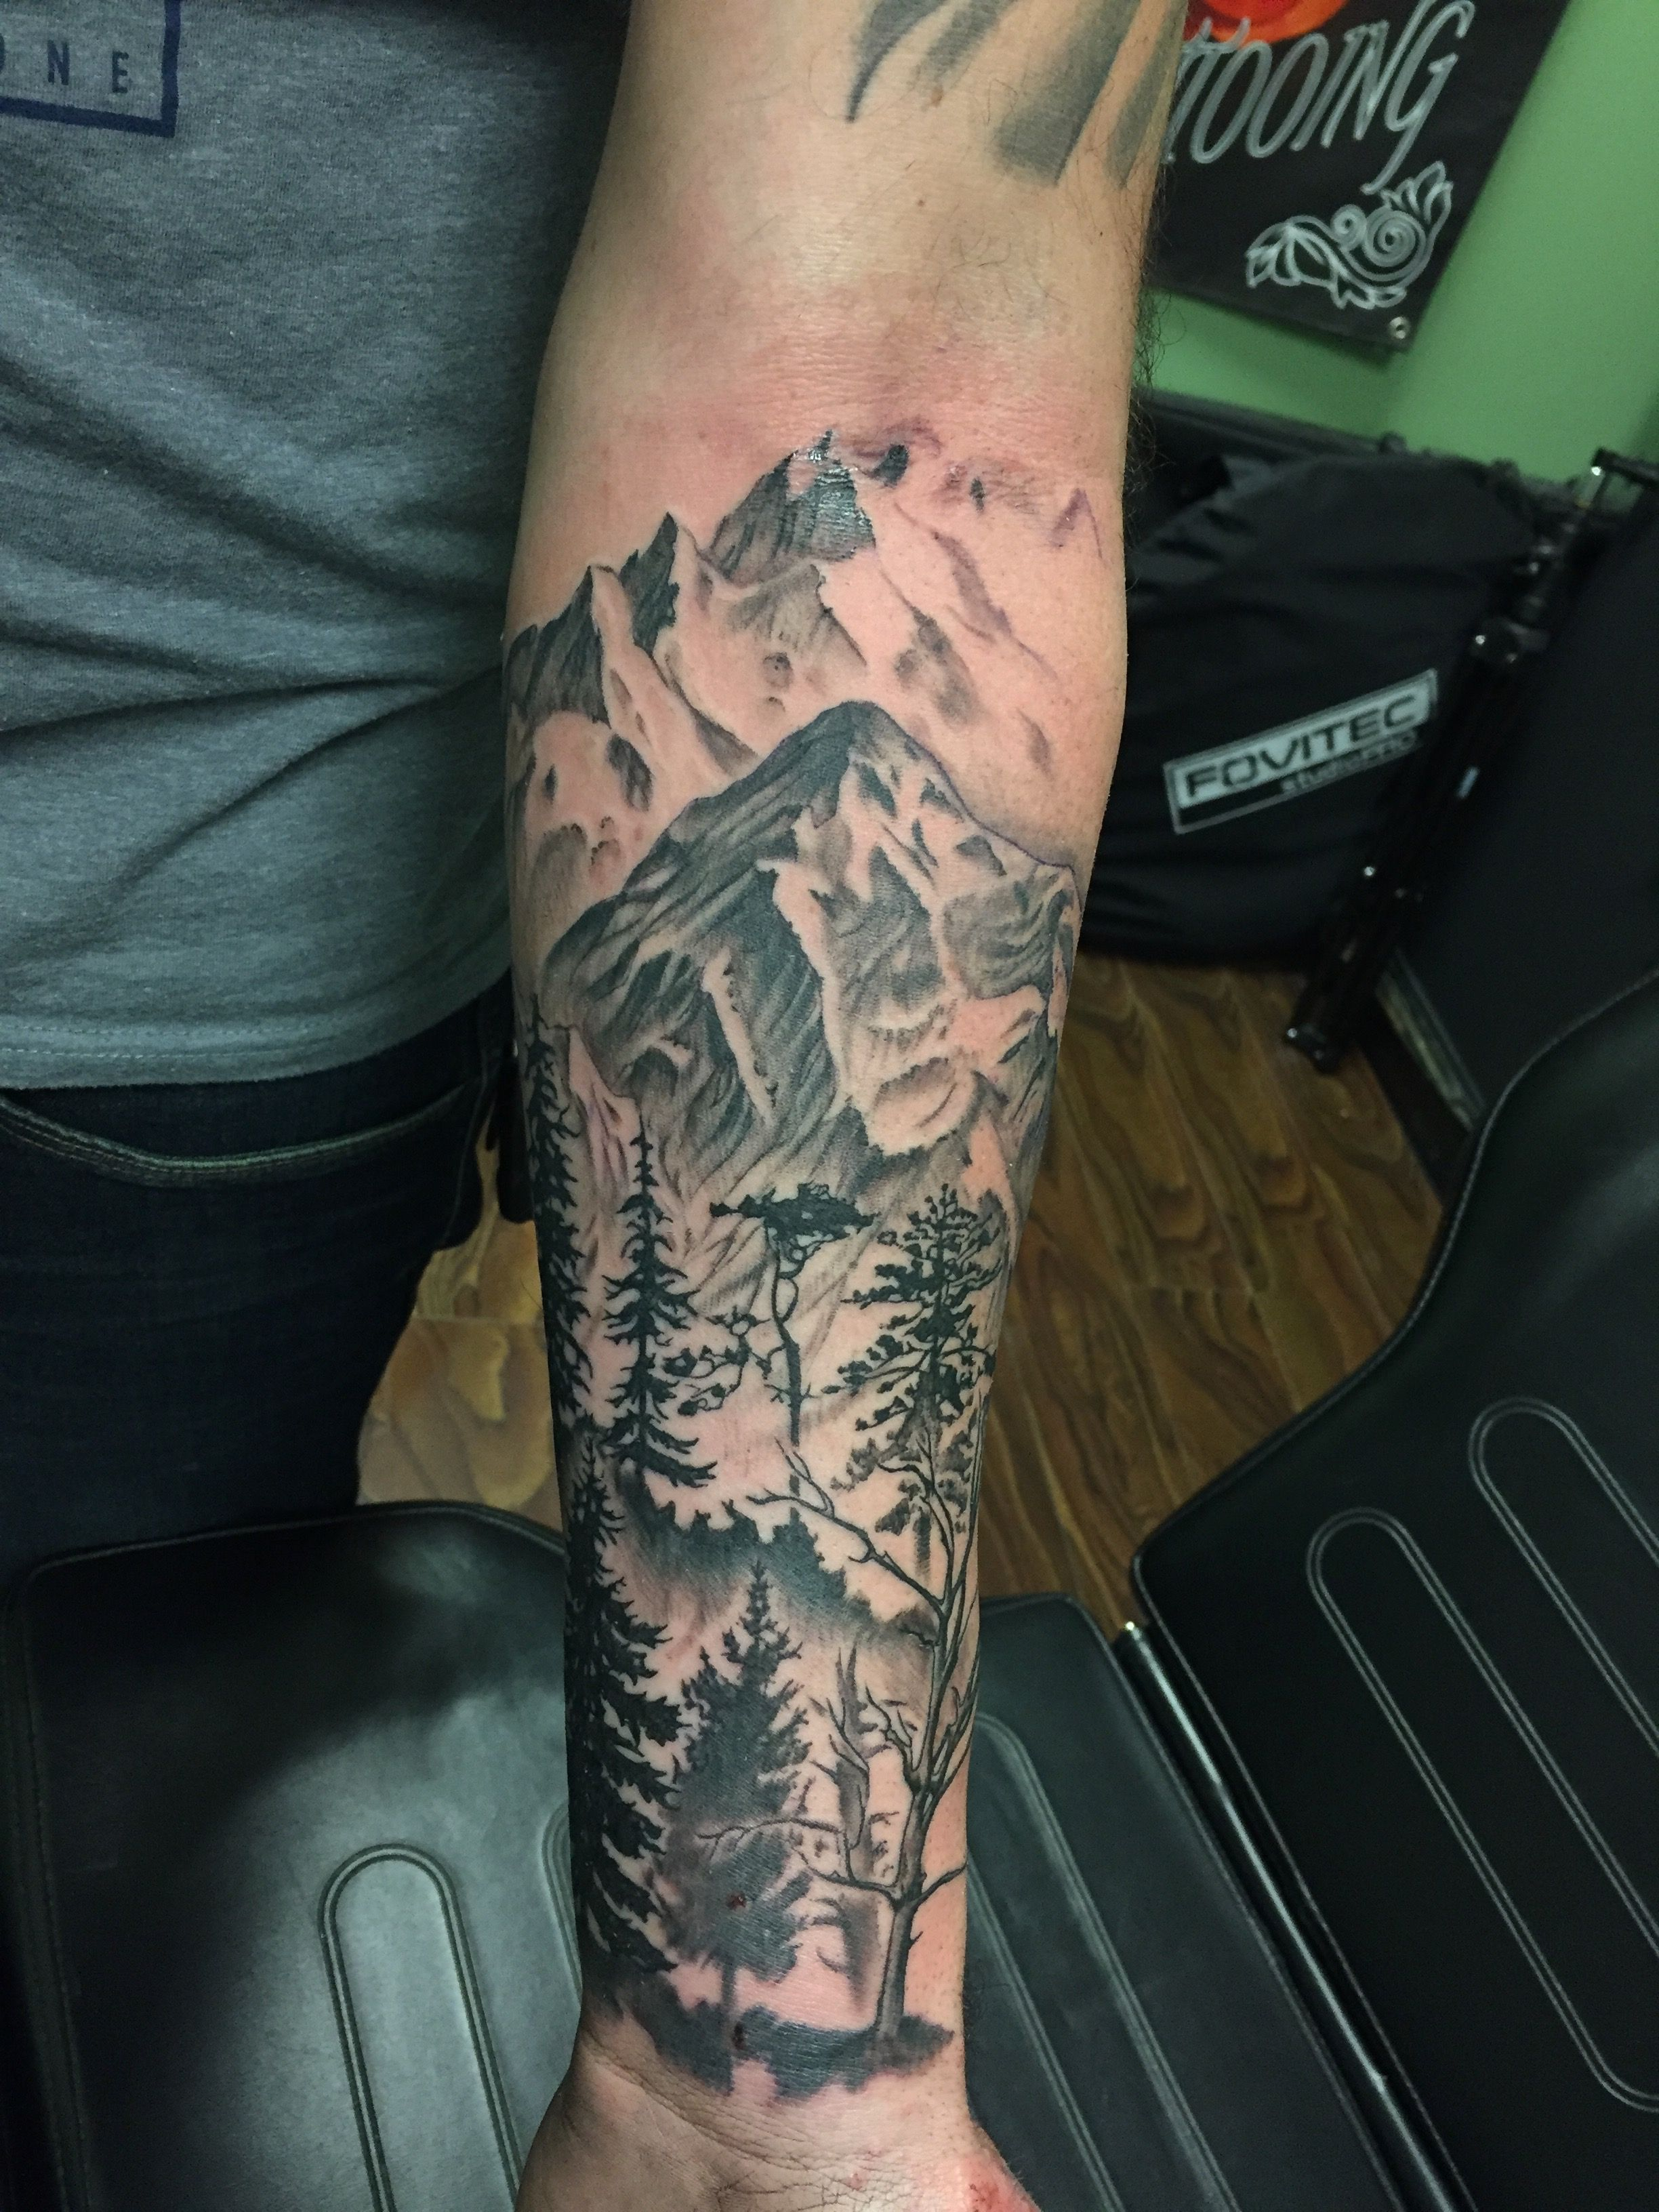 I love designing in such a way as to bring depth and dimension into a piece, especially when the work inspires me to get my ass outside to look at some trees!  #ryanthompsontattoos #tradewindstattoo #njtattooartist #tomsriver #tattooartist #trustyourartist #tattoosleeve #sleeve #blackandgreytattoo #blackandgrey #nocturnaltattooink #inked #guyswithtattoos #inkedguys #tattoos #outdoortattoo #realistictattoo #blackandgreyrealism #mountaintattoo #treetattoo #optoutside #outdoorsy #climbmountains